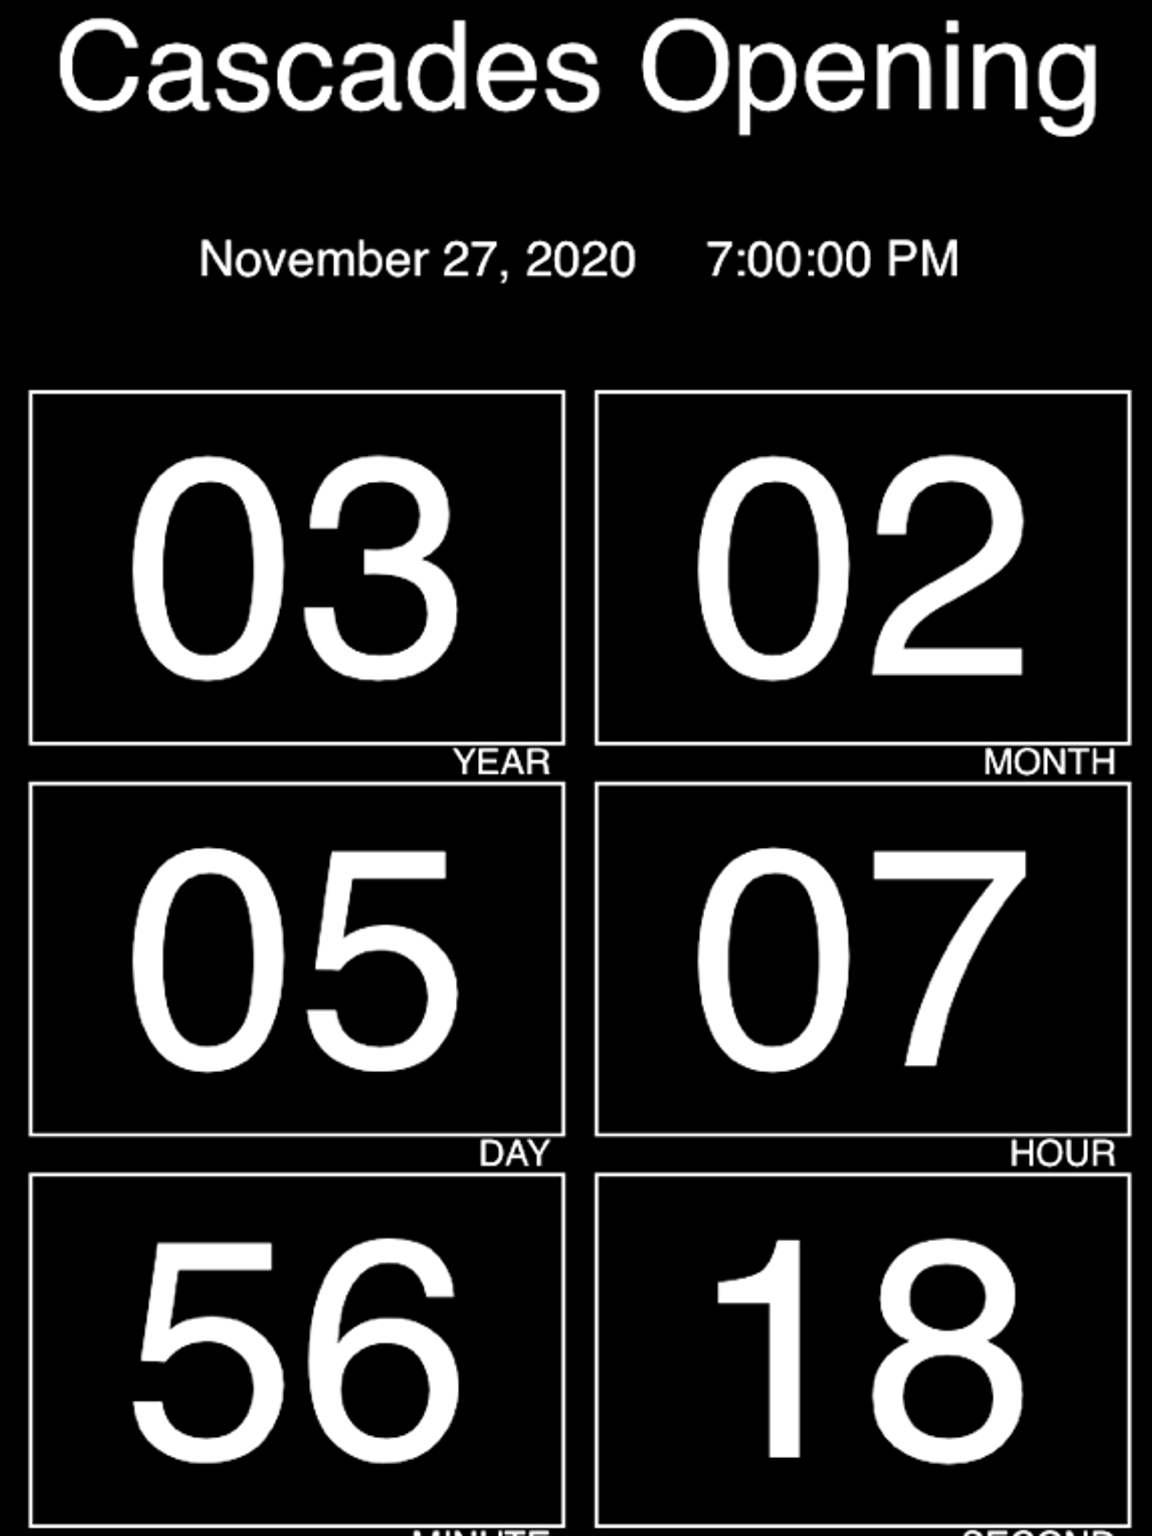 On Sept. 22, a countdown clock shows the exact time